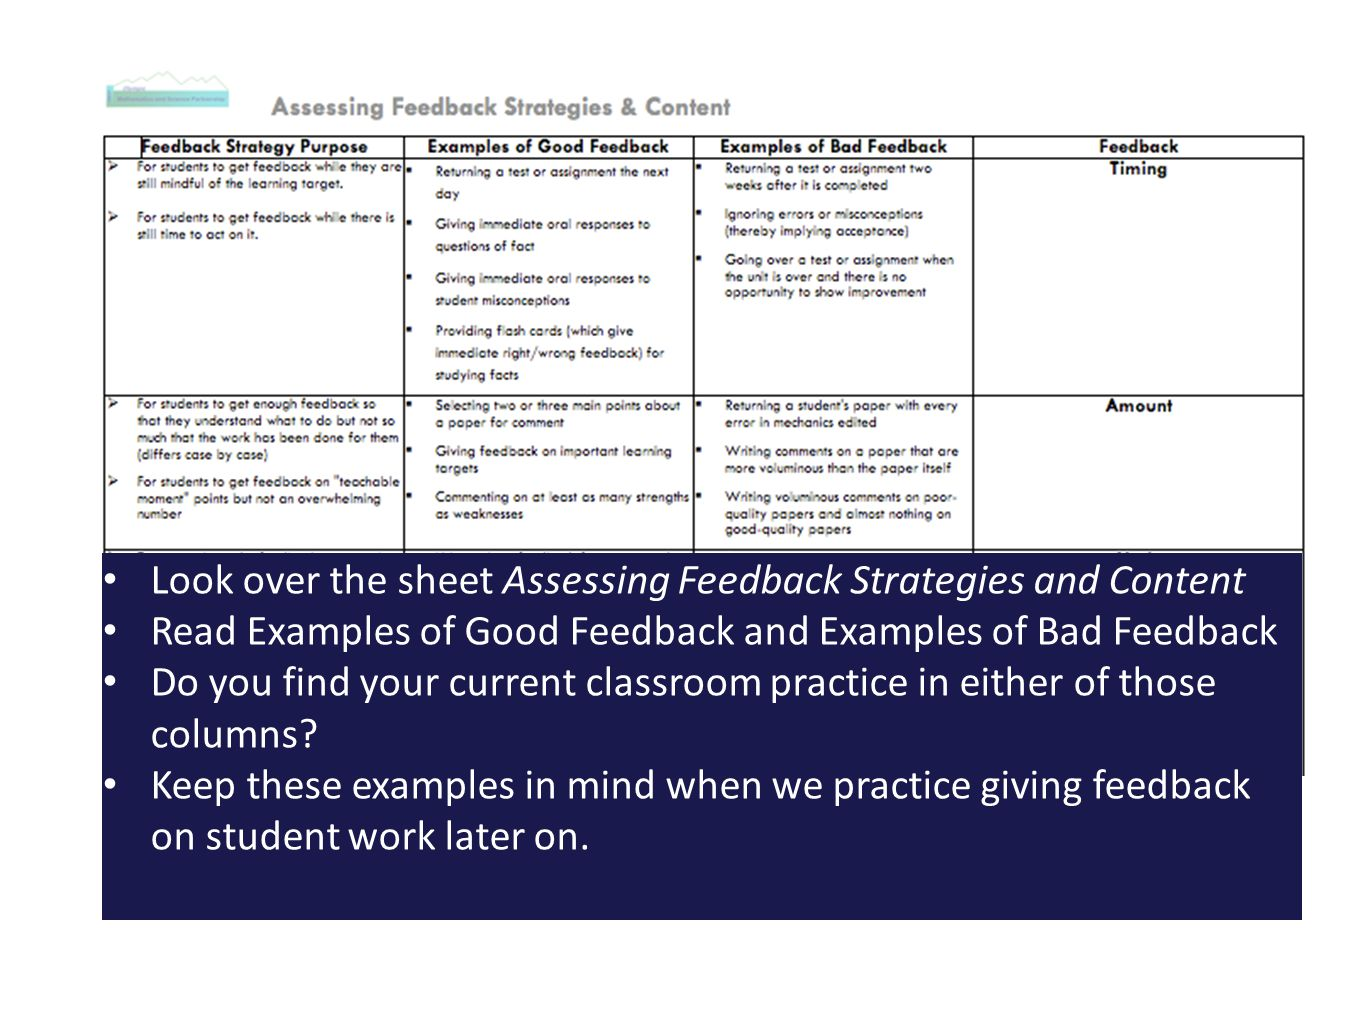 Look over the sheet Assessing Feedback Strategies and Content